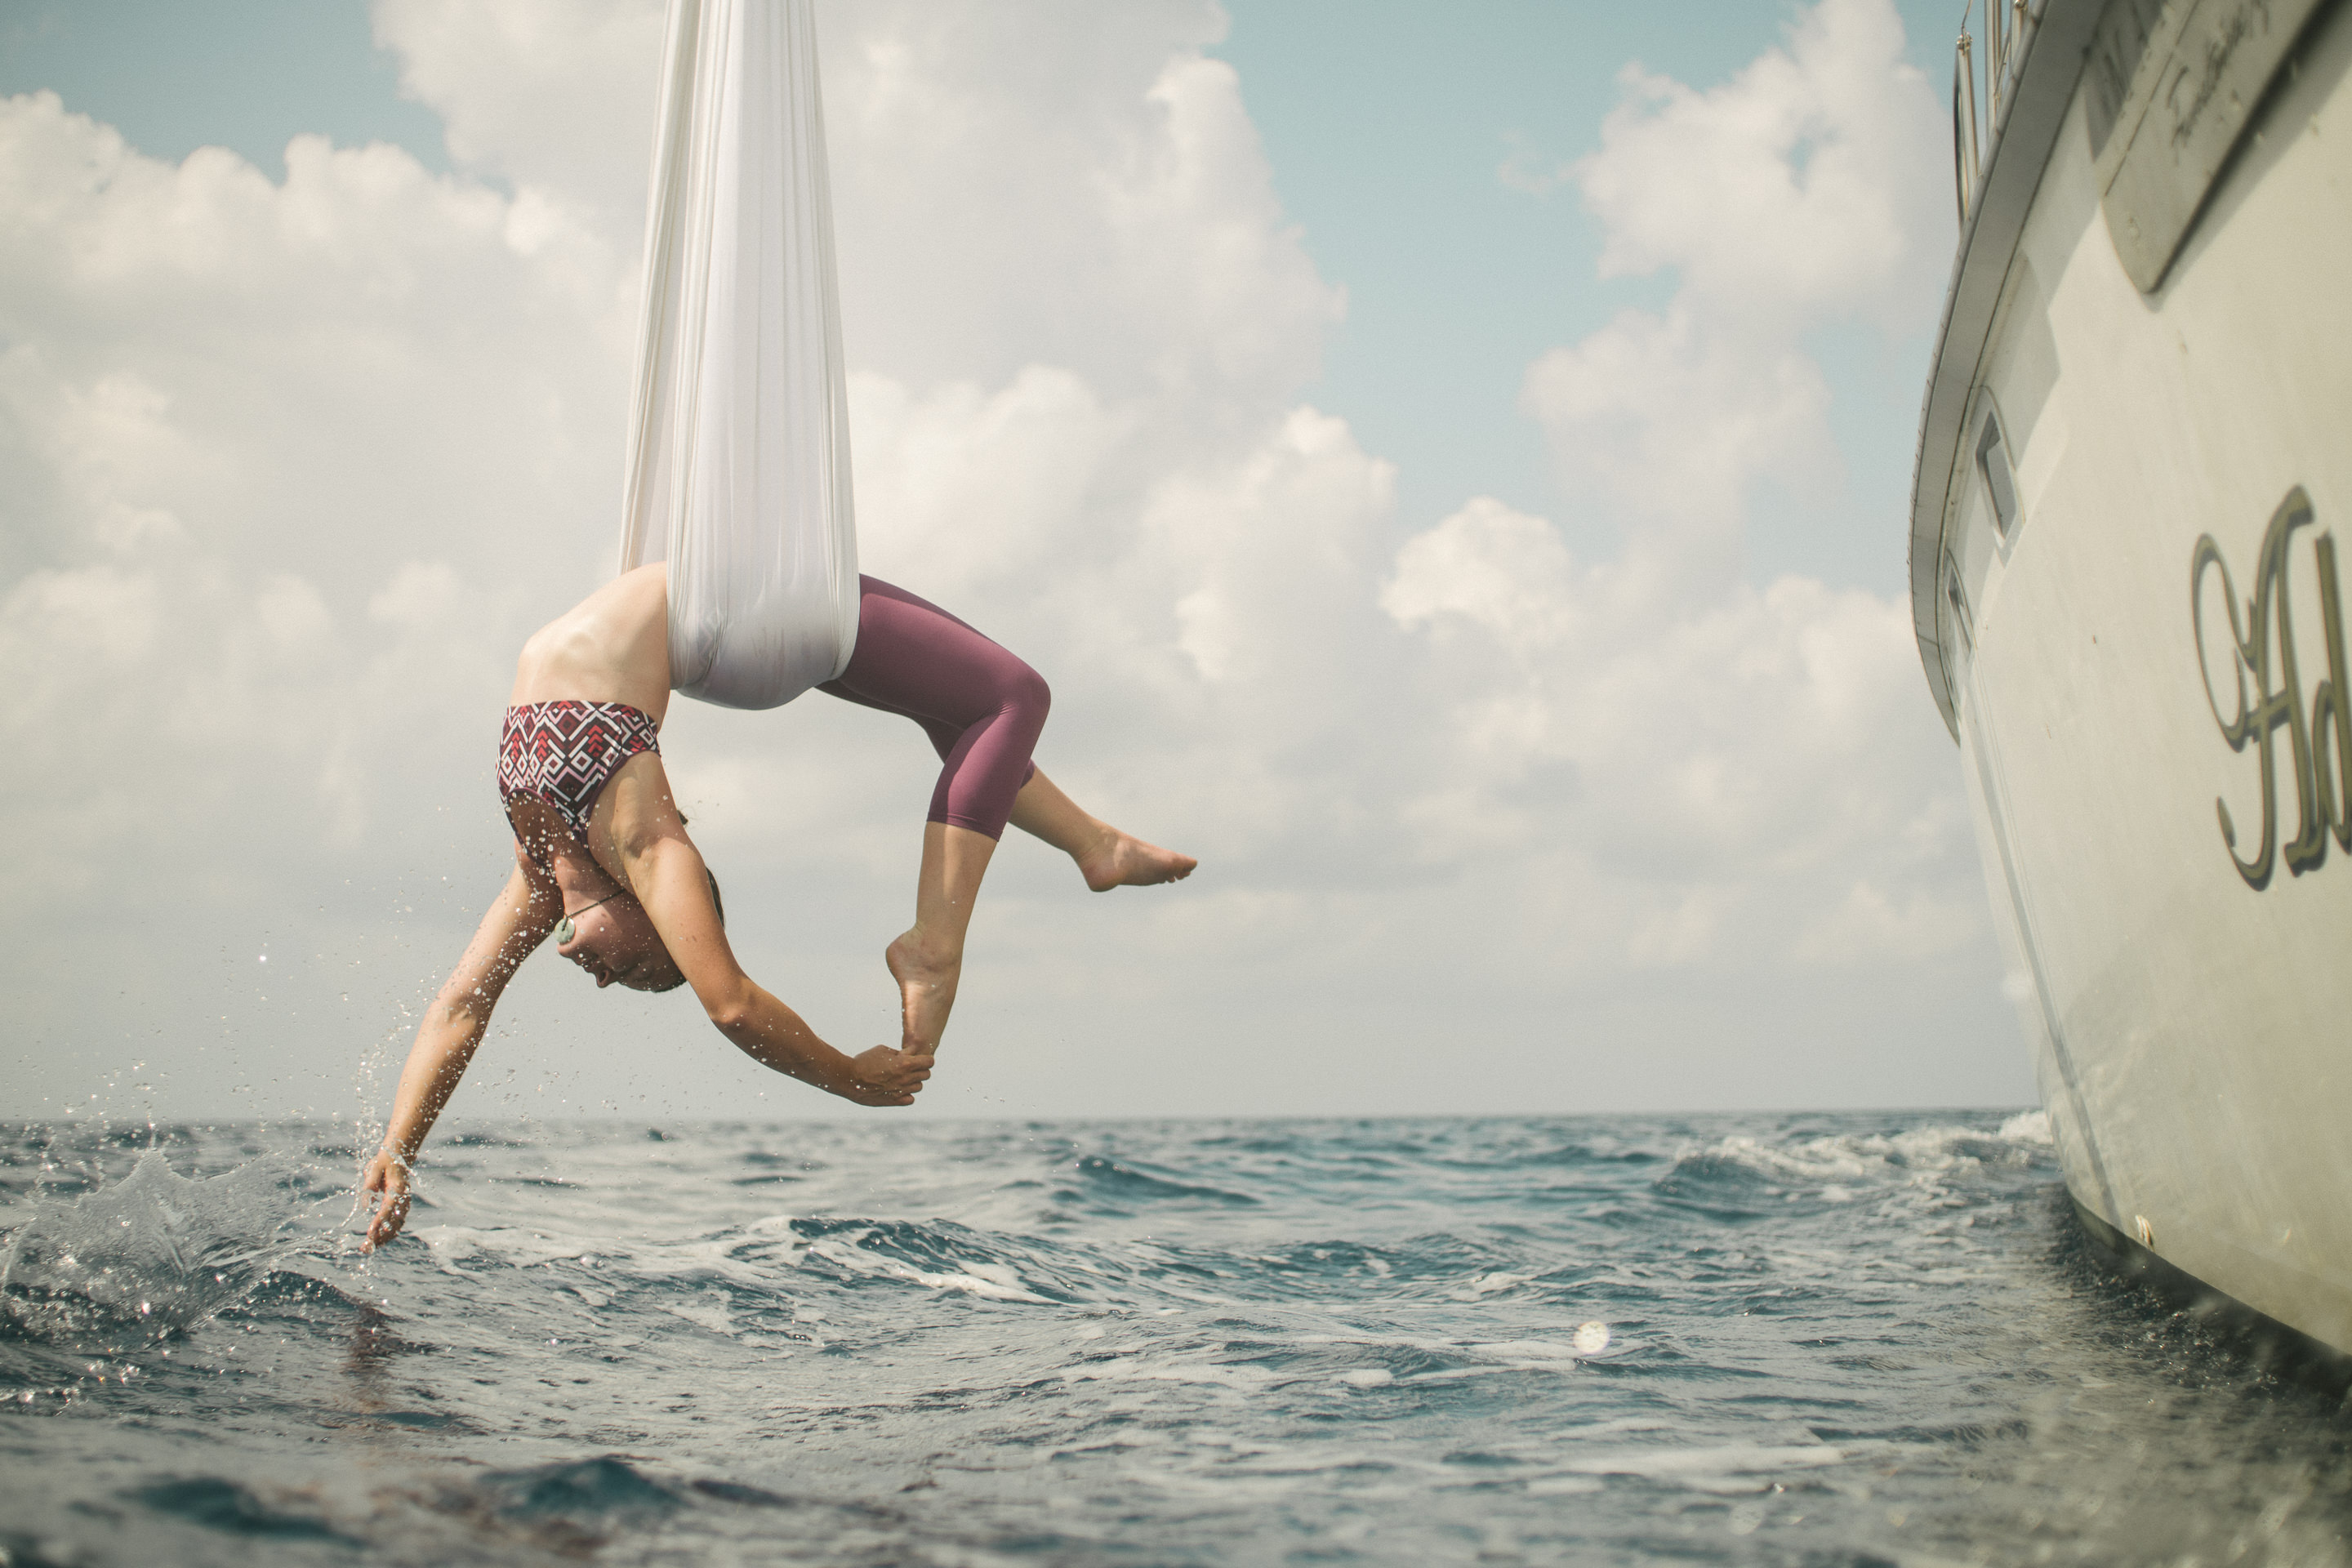 Carribean Sea Aerial Hammock 6